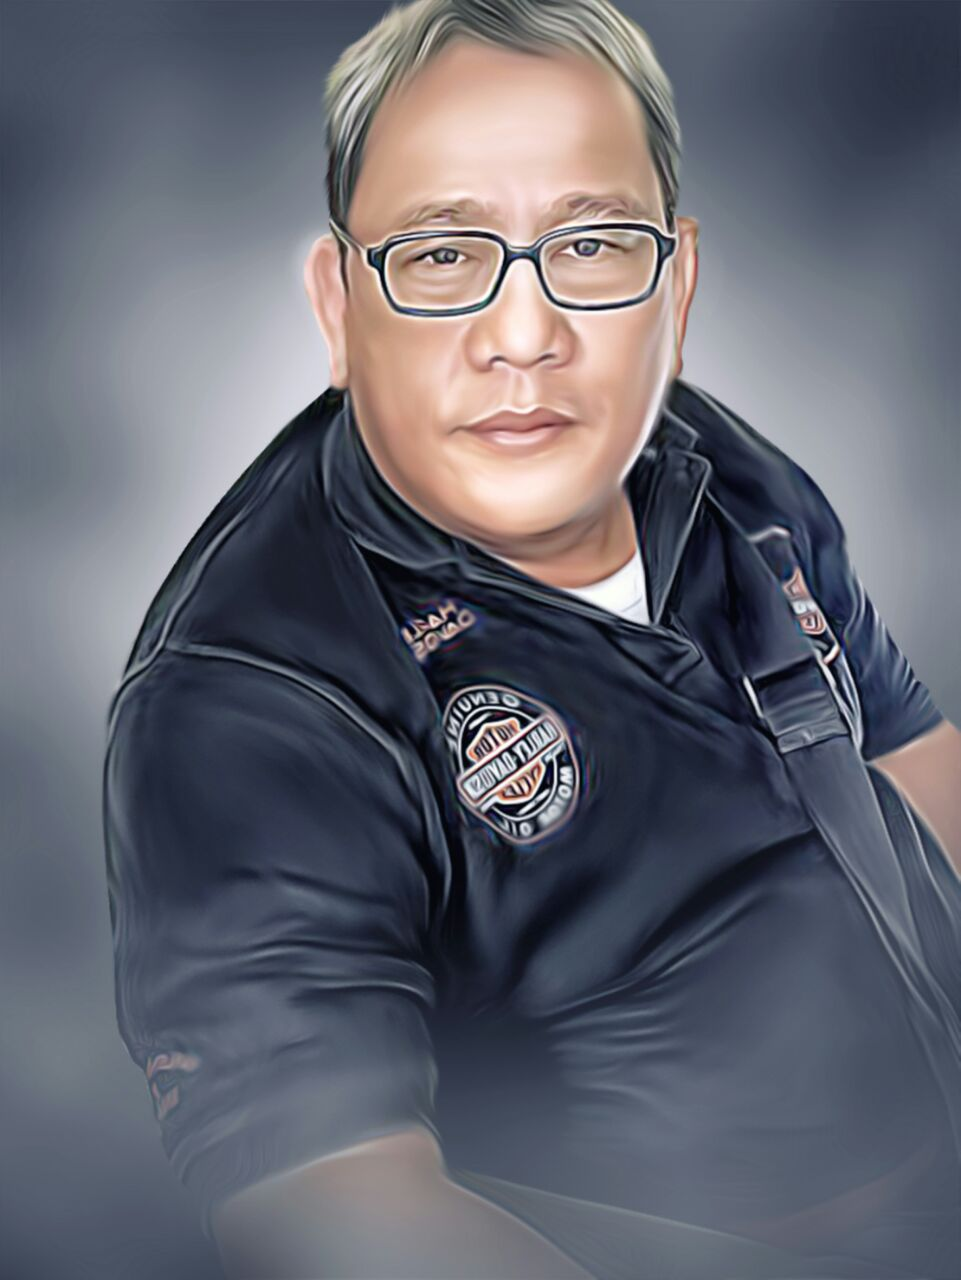 karikatur bang boy